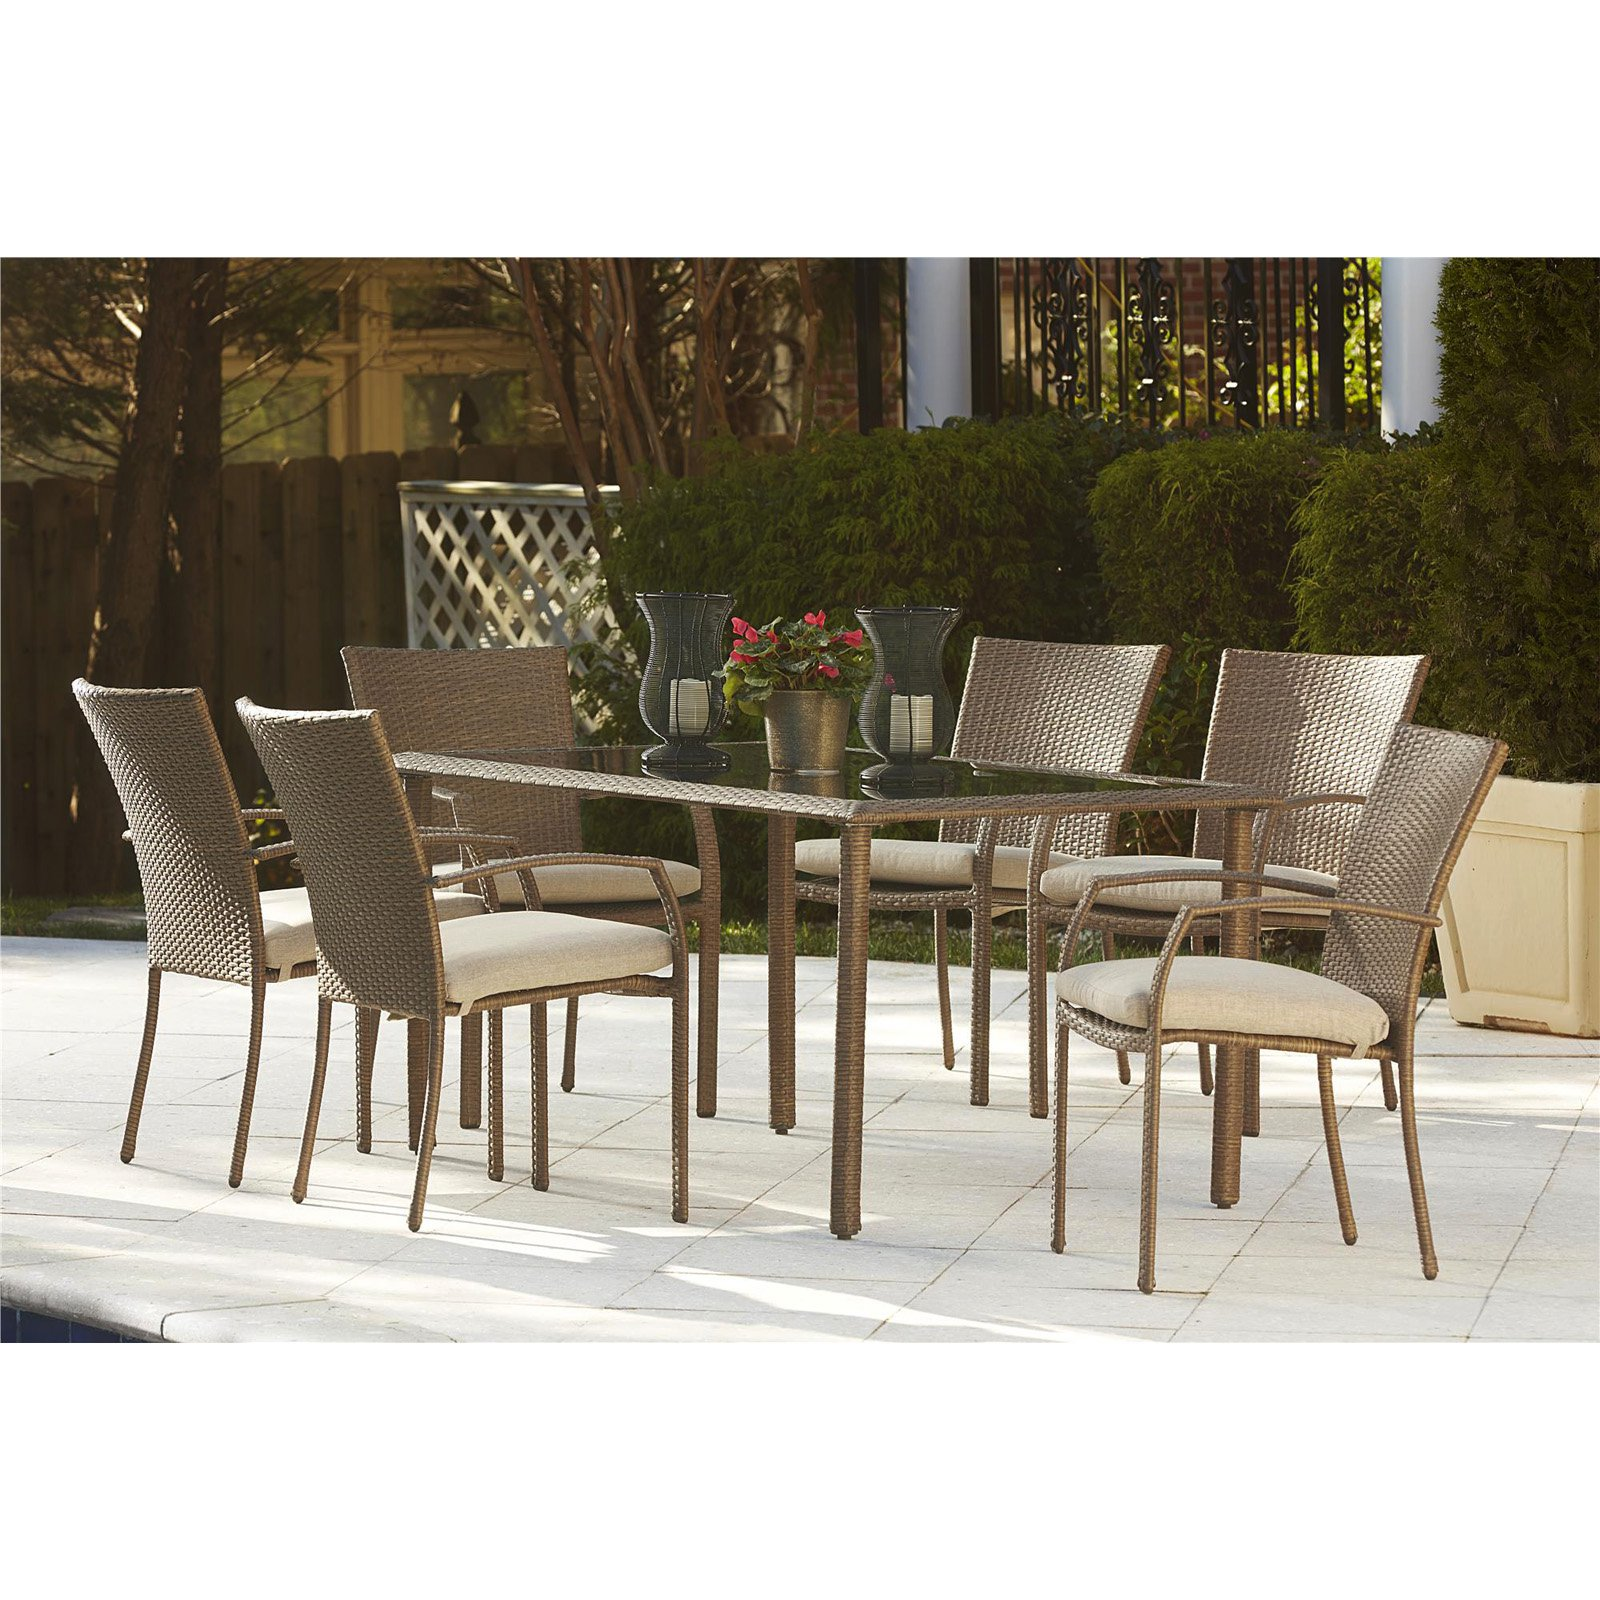 Cosco Outdoor 7-Piece Lakewood Ranch Steel Woven Wicker Patio Dining Set with Cushions, Brown